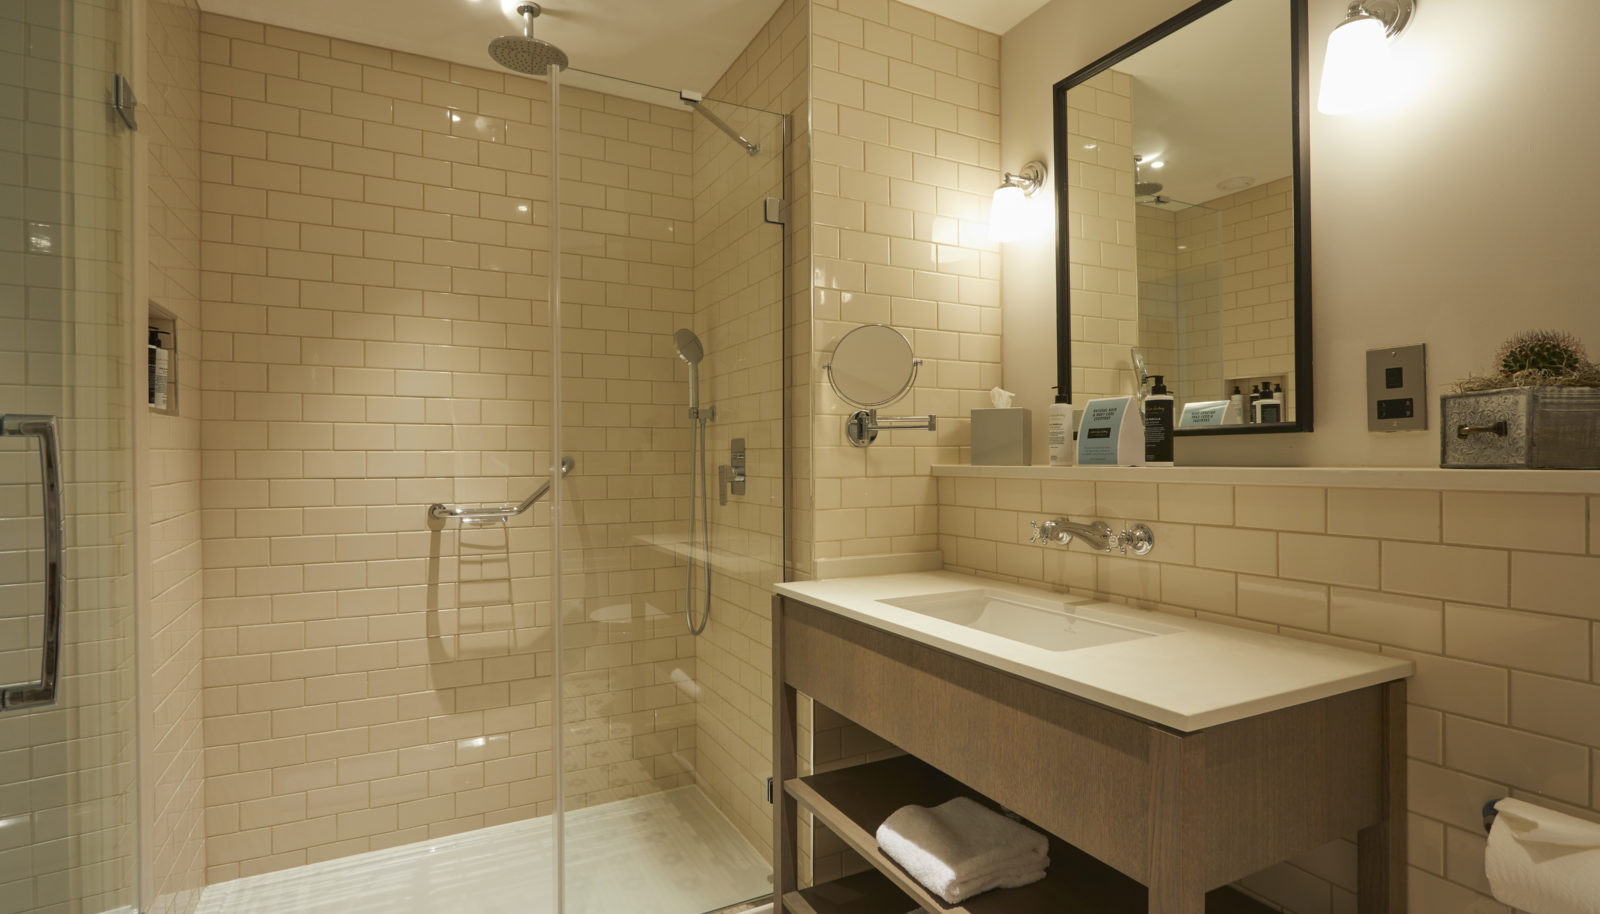 Medium double room bathroom with shower at riverside Hotel the Swan at Streatley